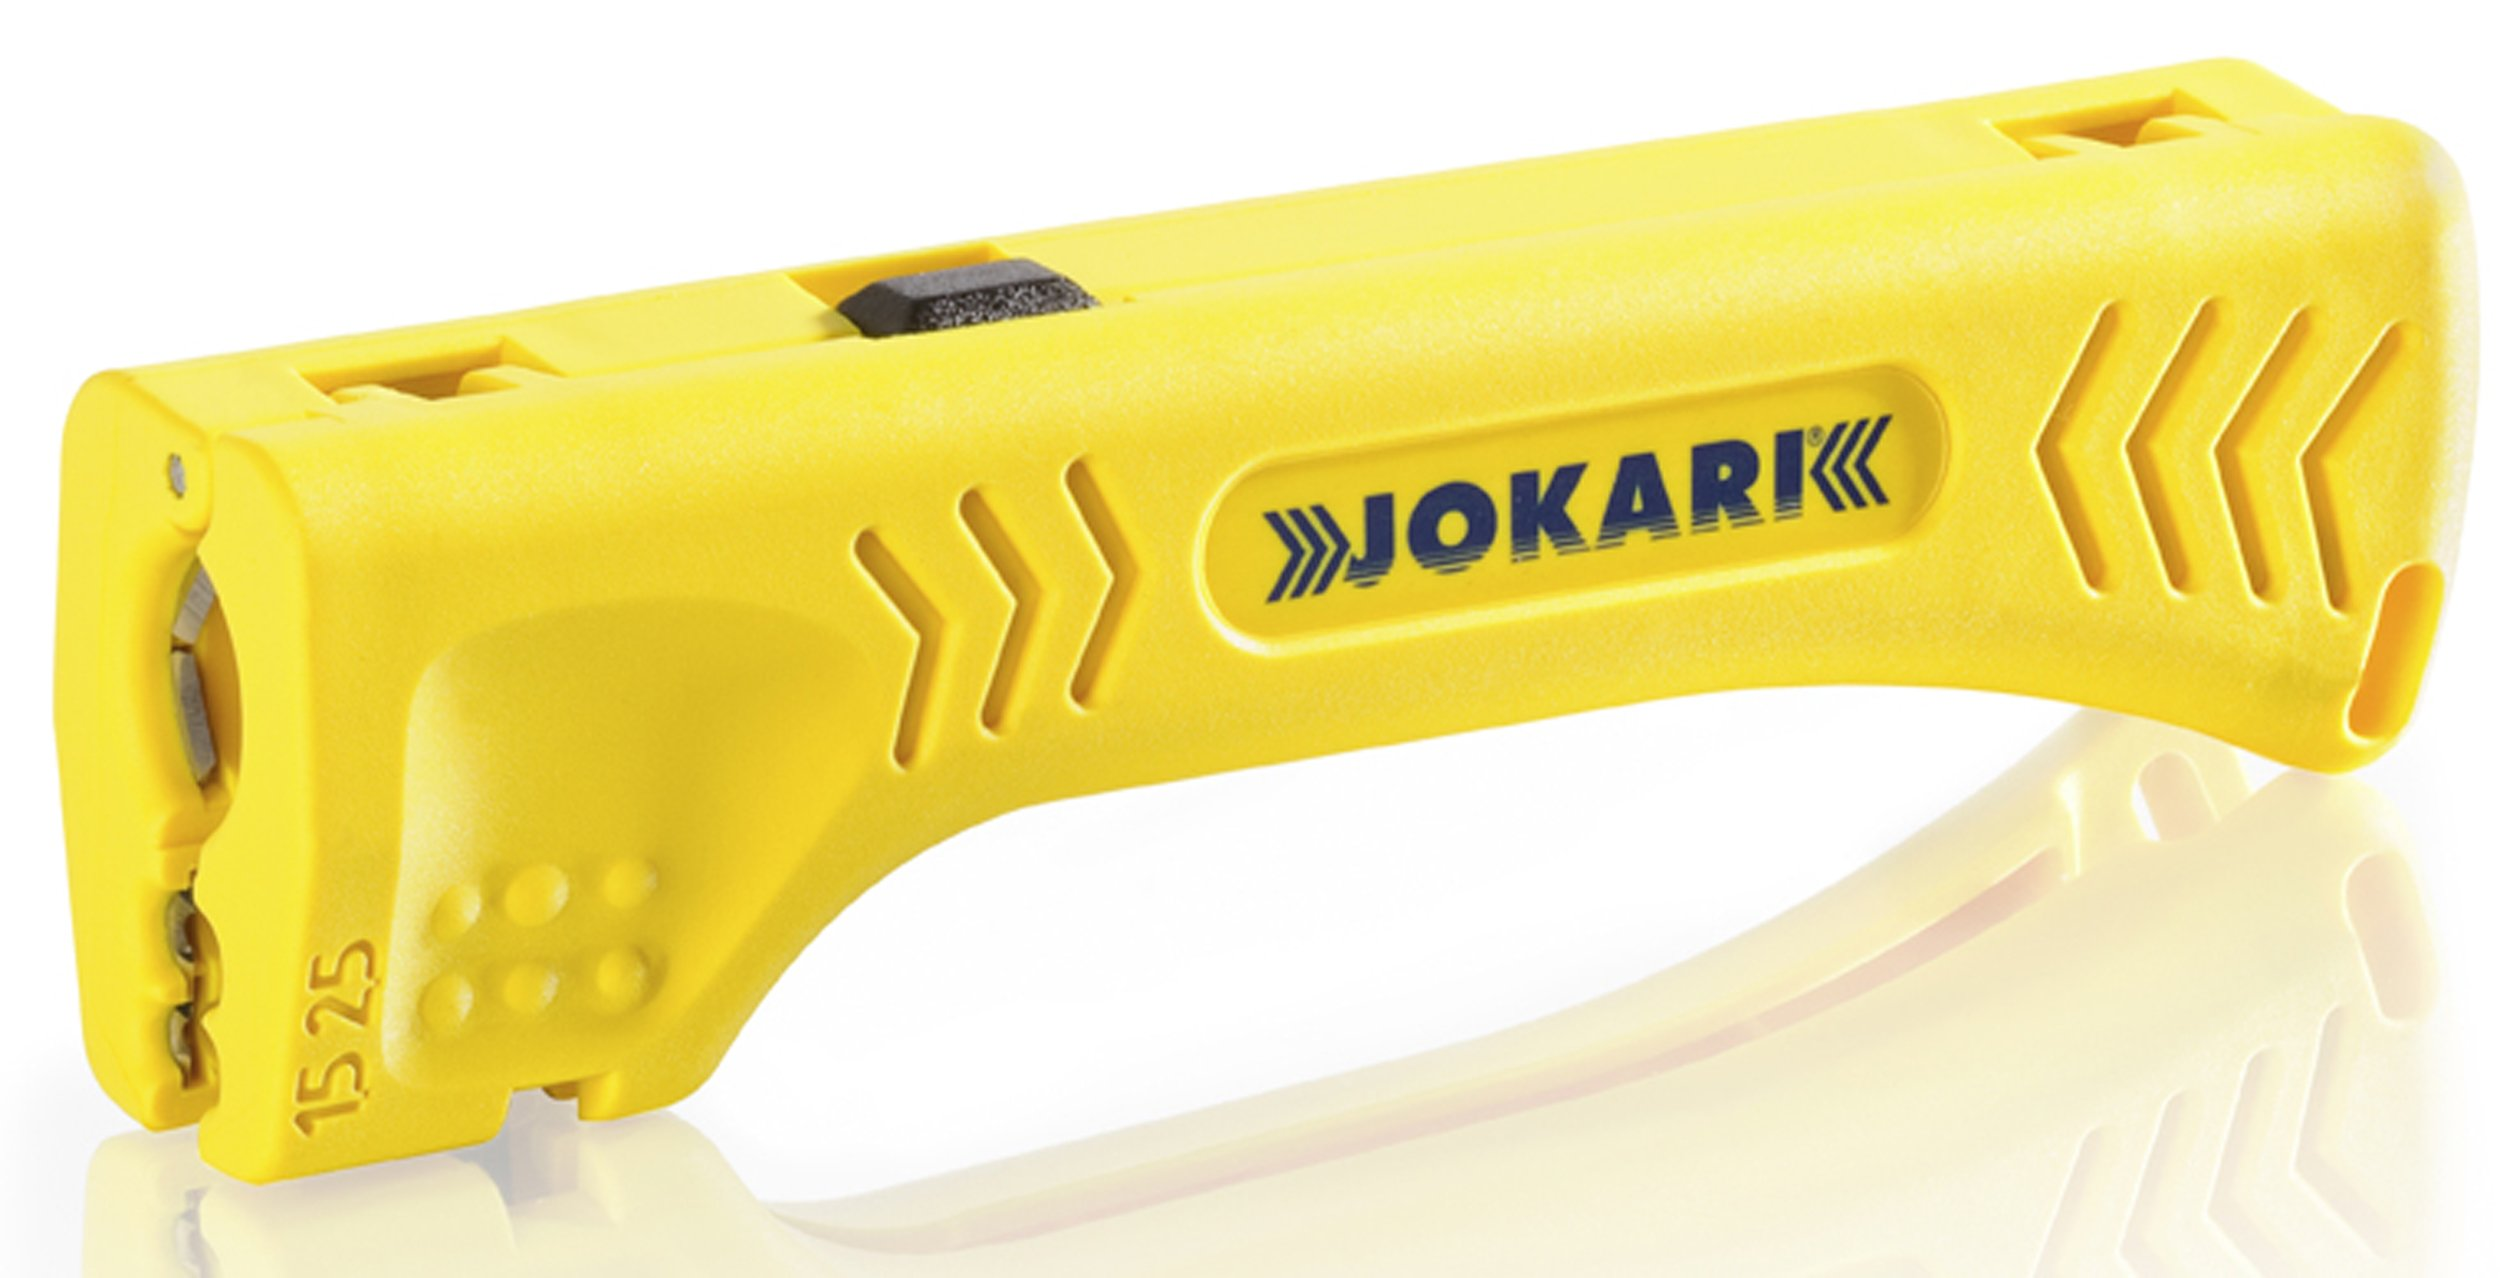 Jokari 30400 Uni-Plus Cable Strippers for Quick, Precise Cable Stripping, 13cm L x 3.8cm W x 2.5cm H